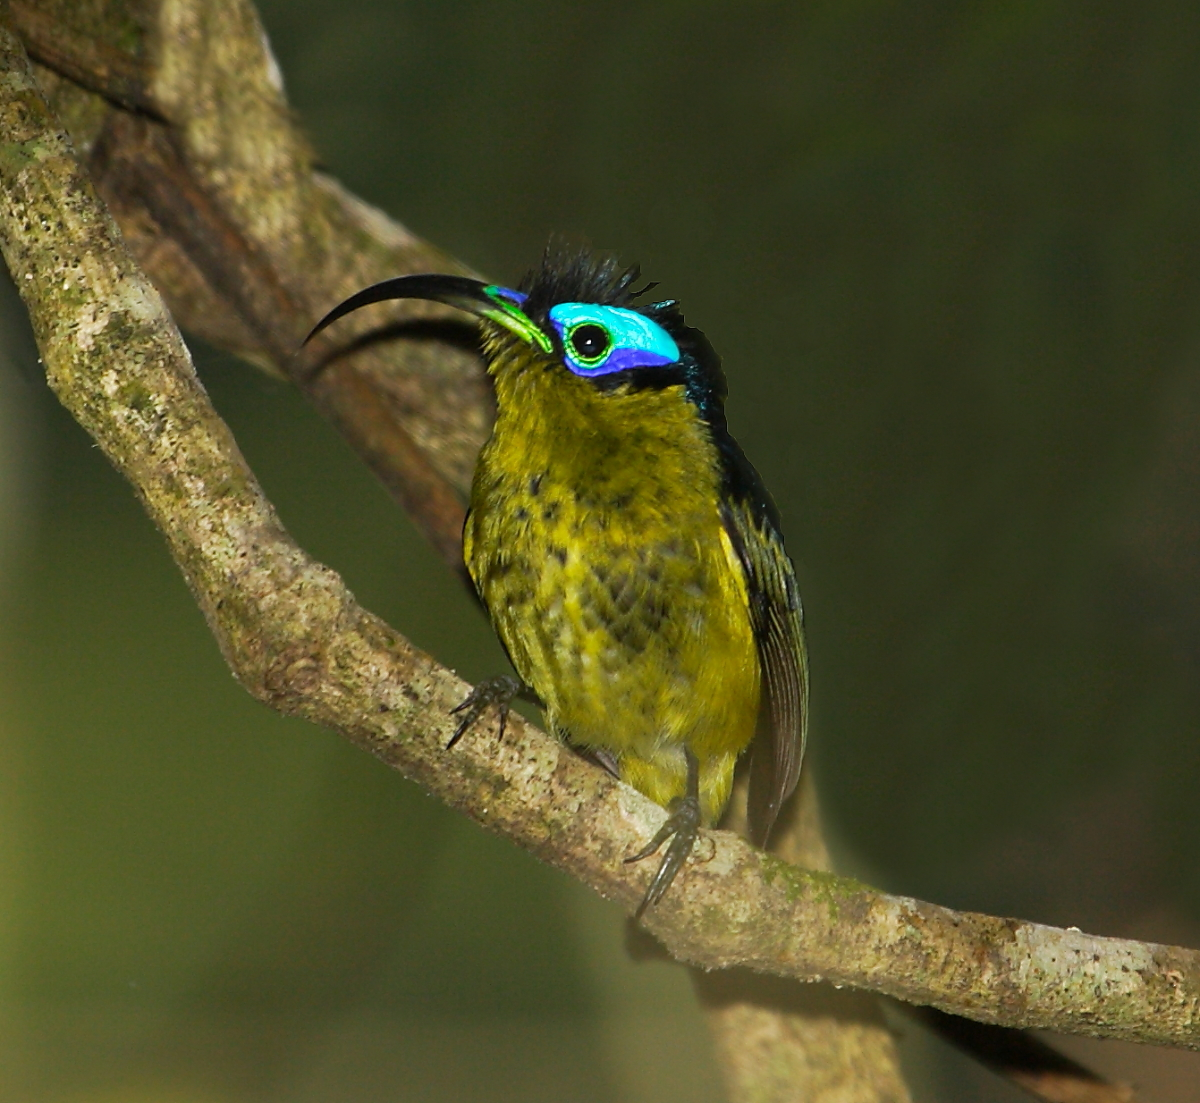 Common Sunbird-Asity is one of 4 very bizarre birds in this endemic Malagasy bird family (sometimes considered a sub-family of Broadbills)